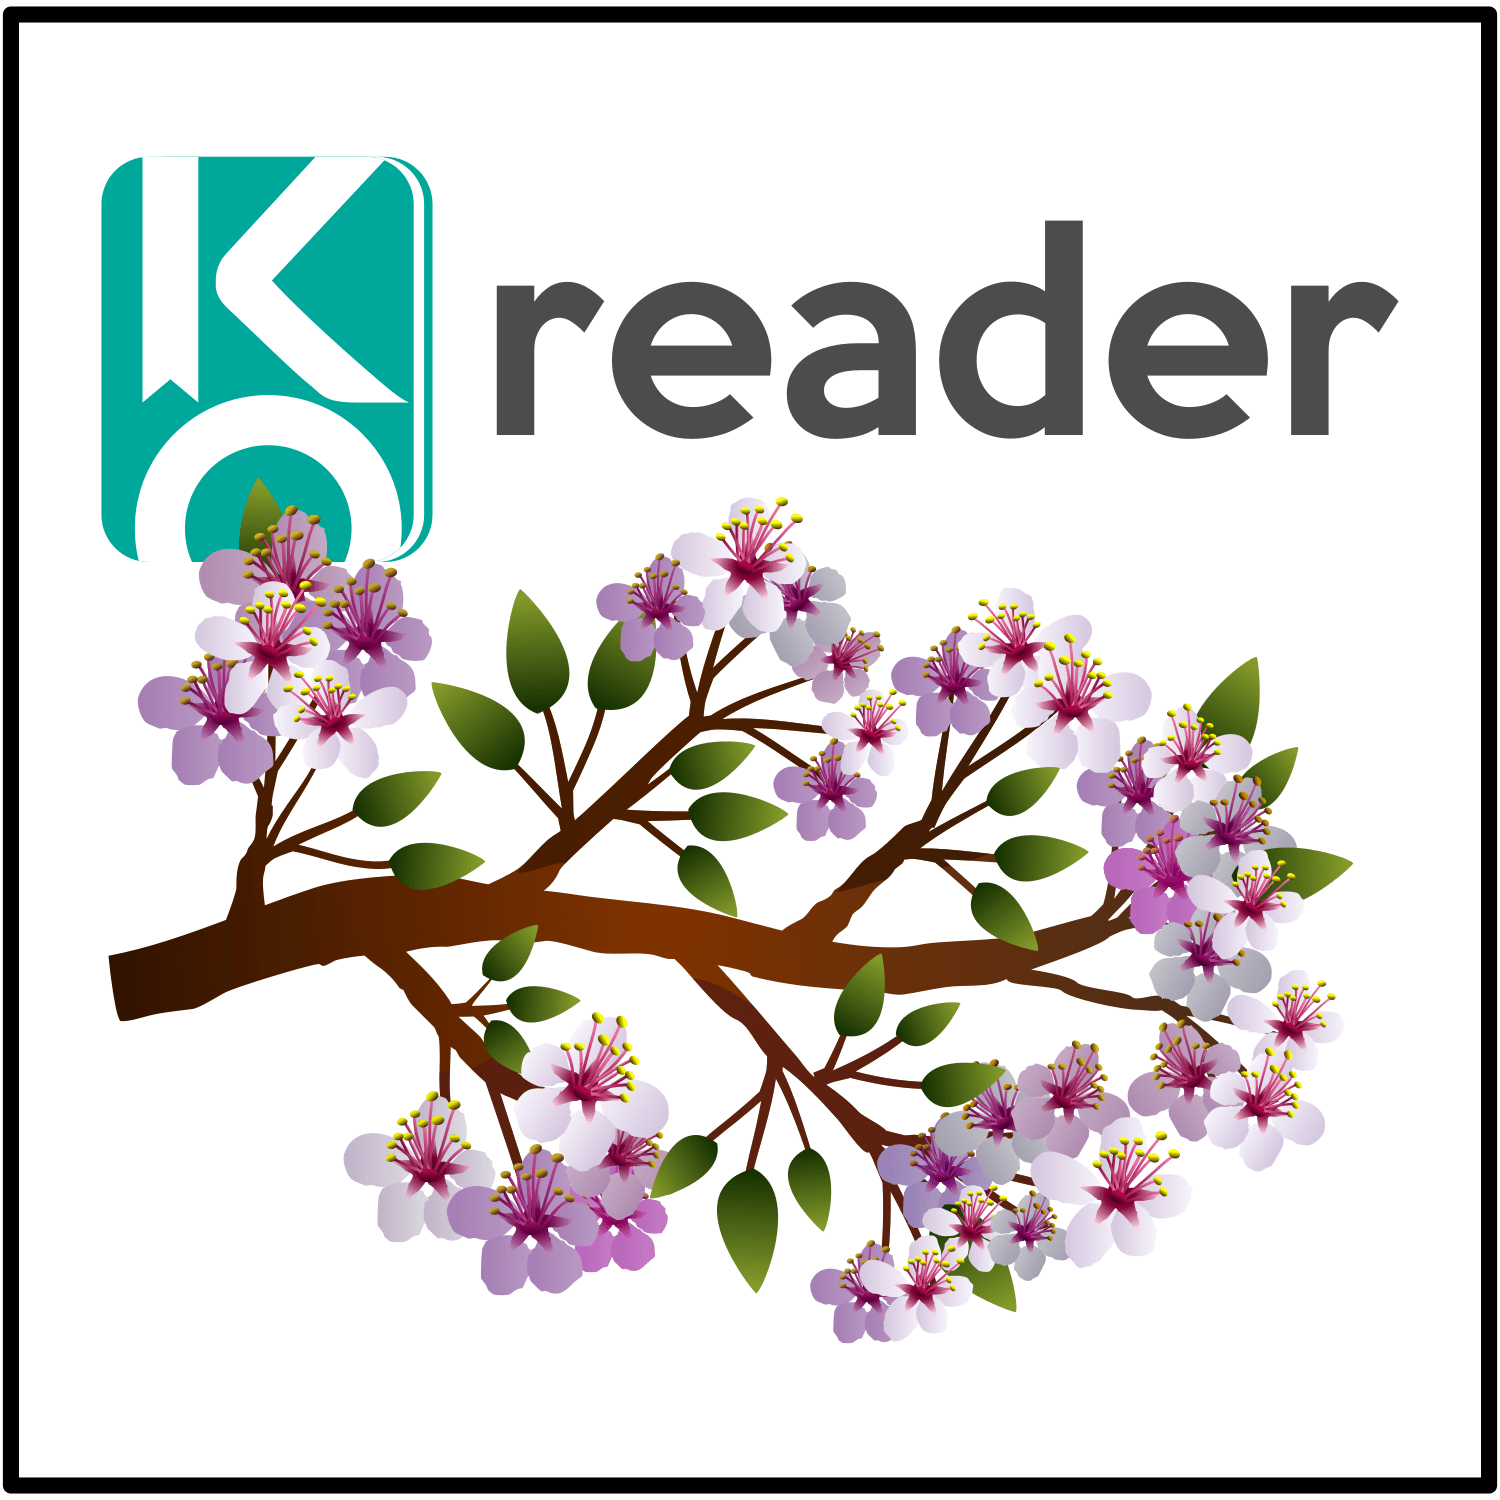 koreader-logo-flowers-fs8